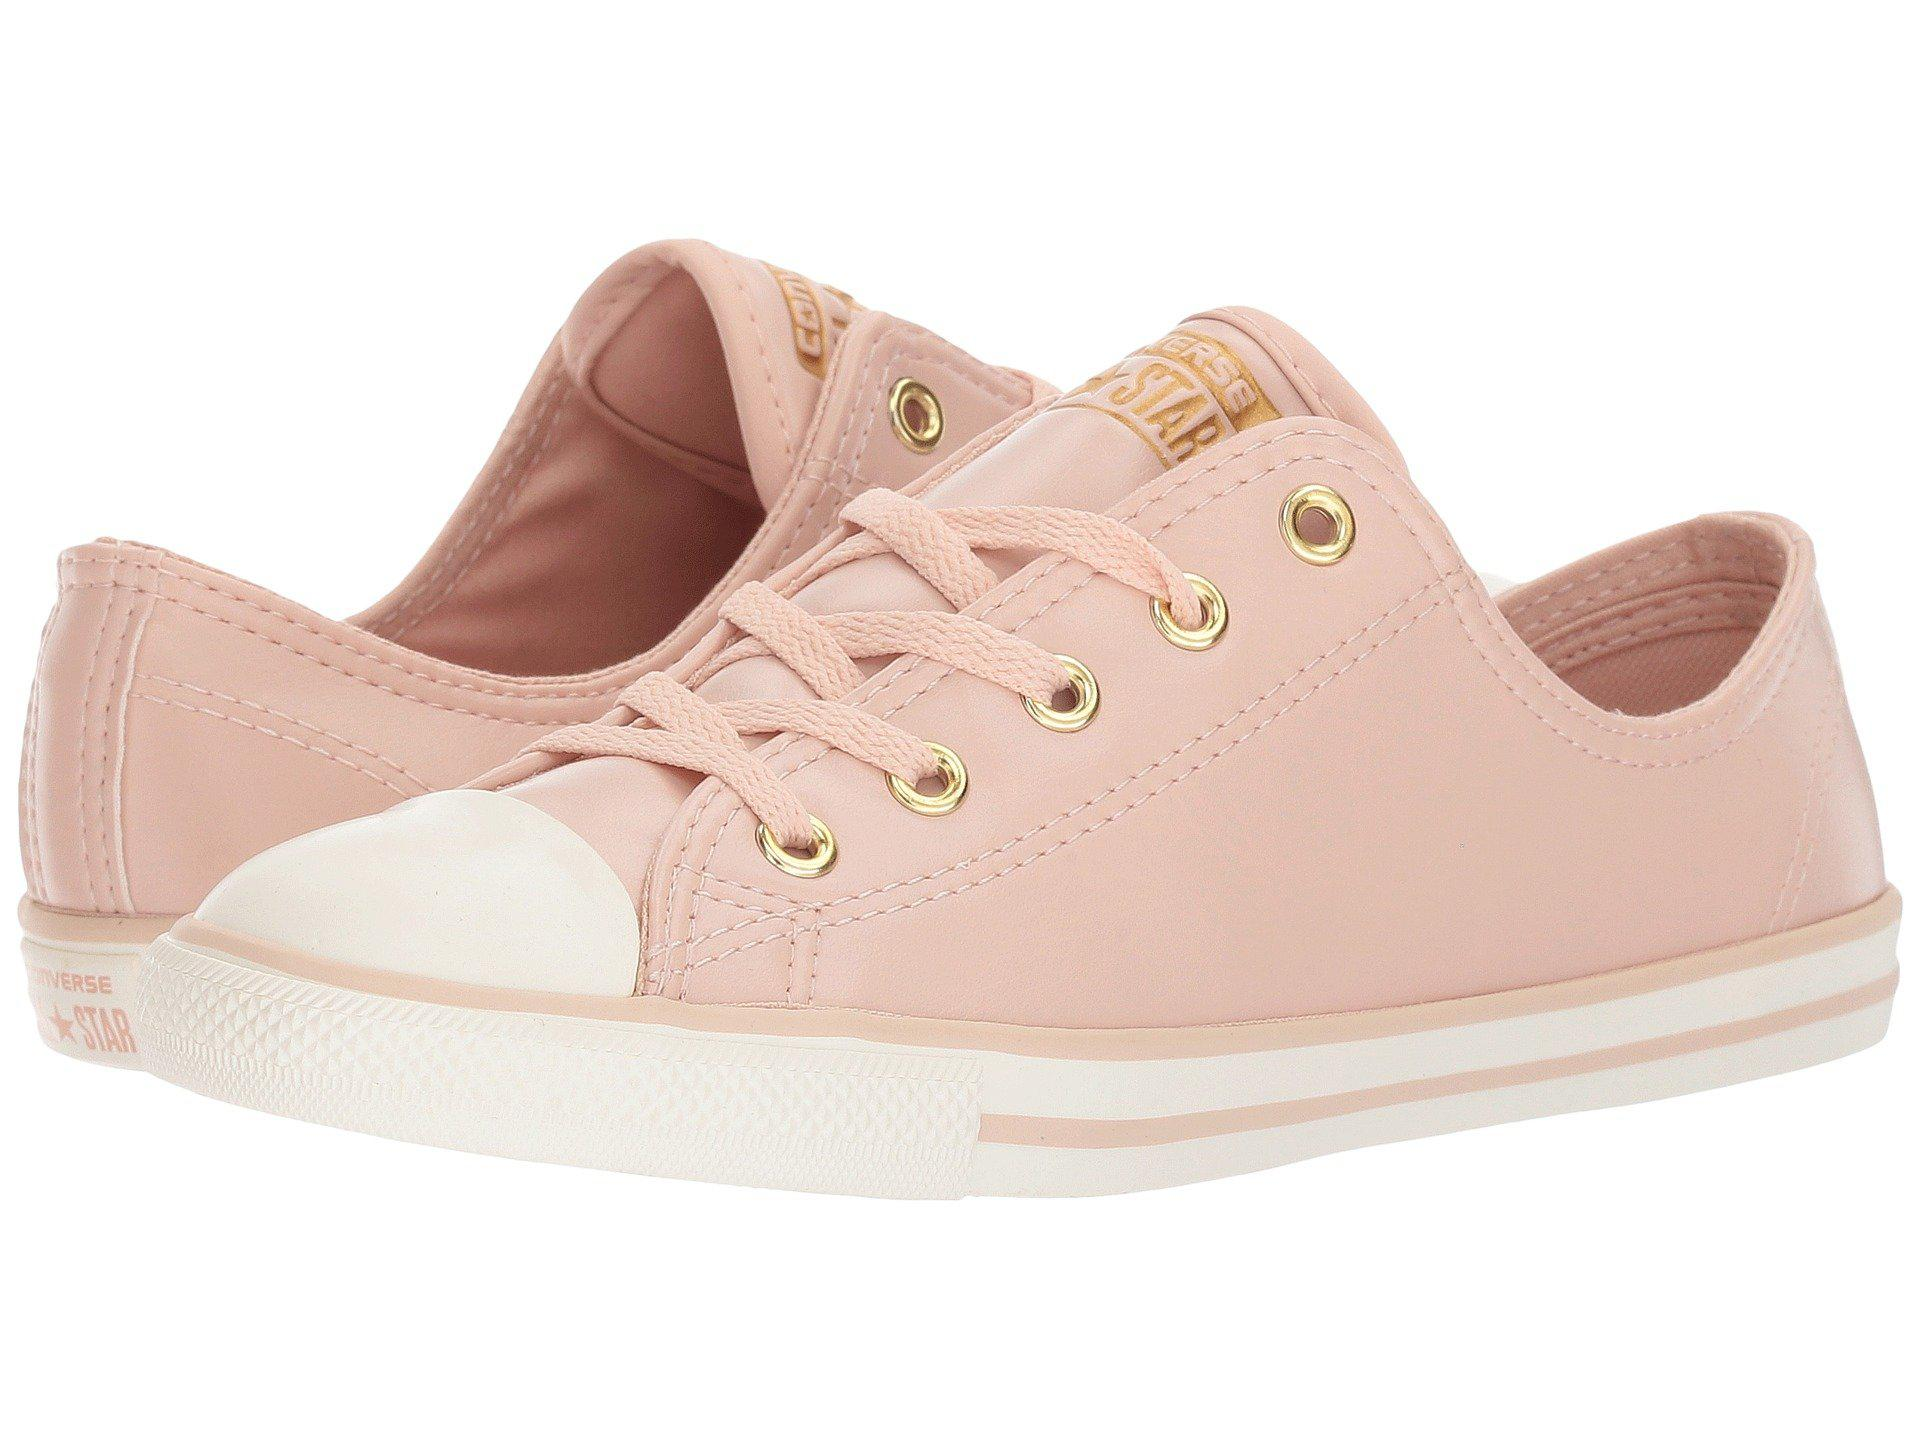 d94371a79416 Lyst - Converse Chuck Taylor All Star Dainty - Ox Craft Sl in Pink